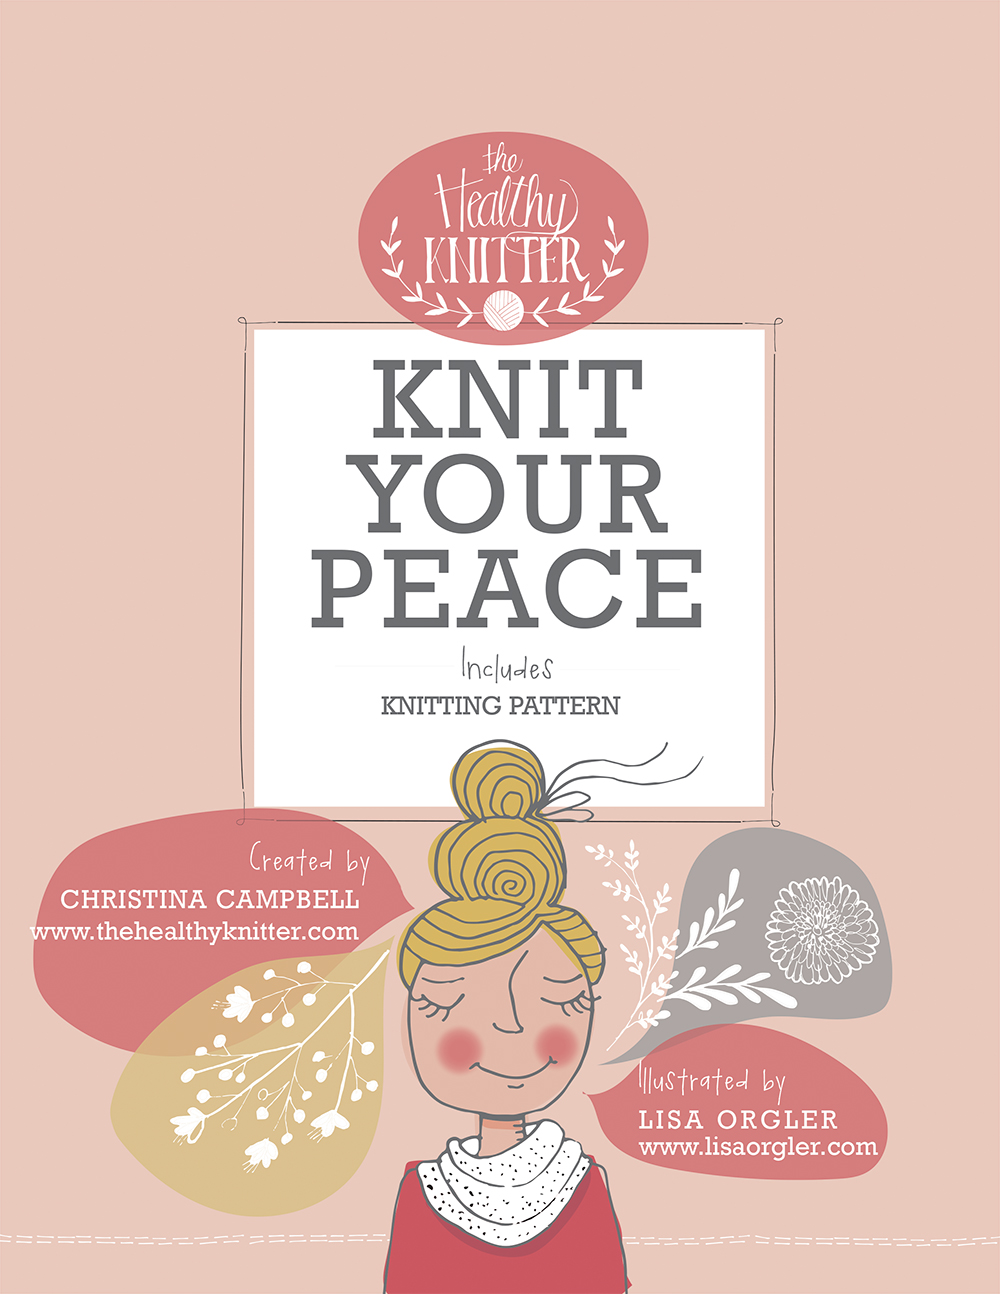 knit your peace image